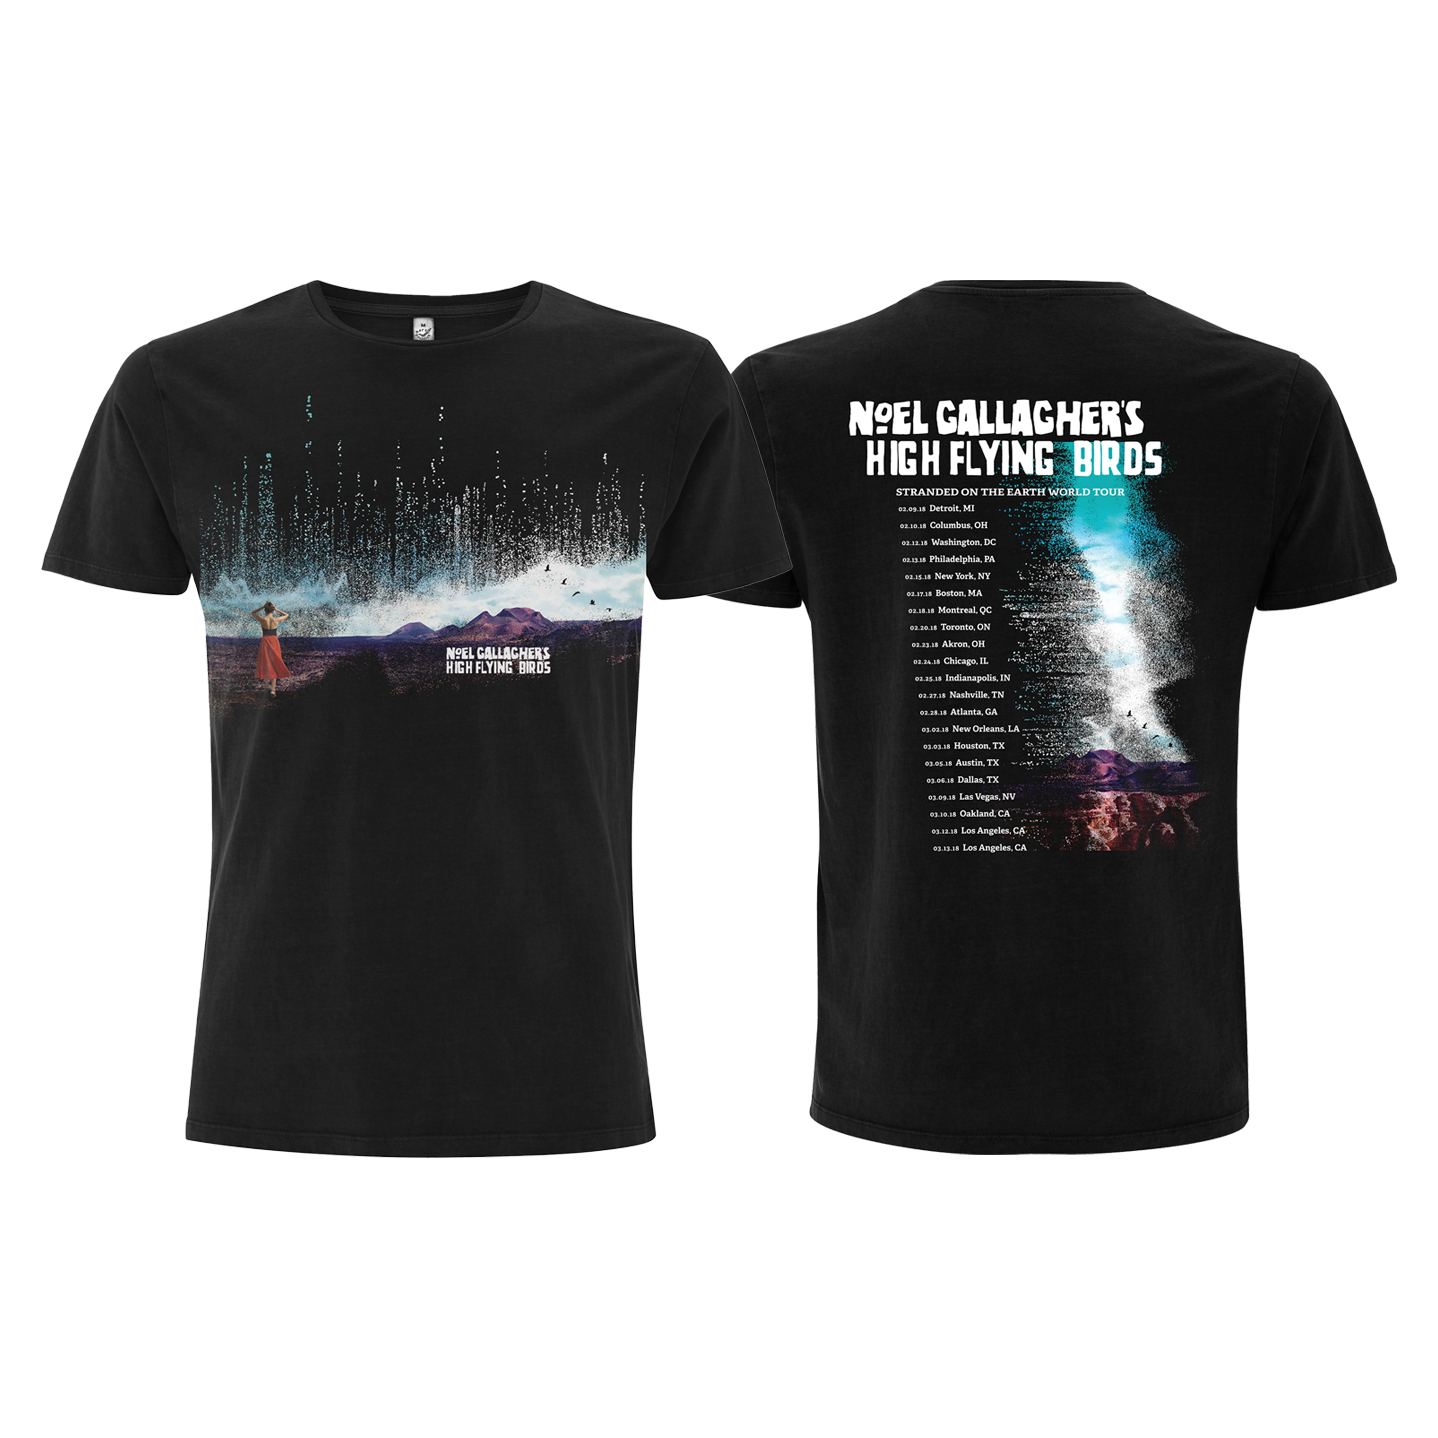 Buy Online Noel Gallagher's High Flying Birds Official Store - The Man Who Built The Moon Tour T-Shirt